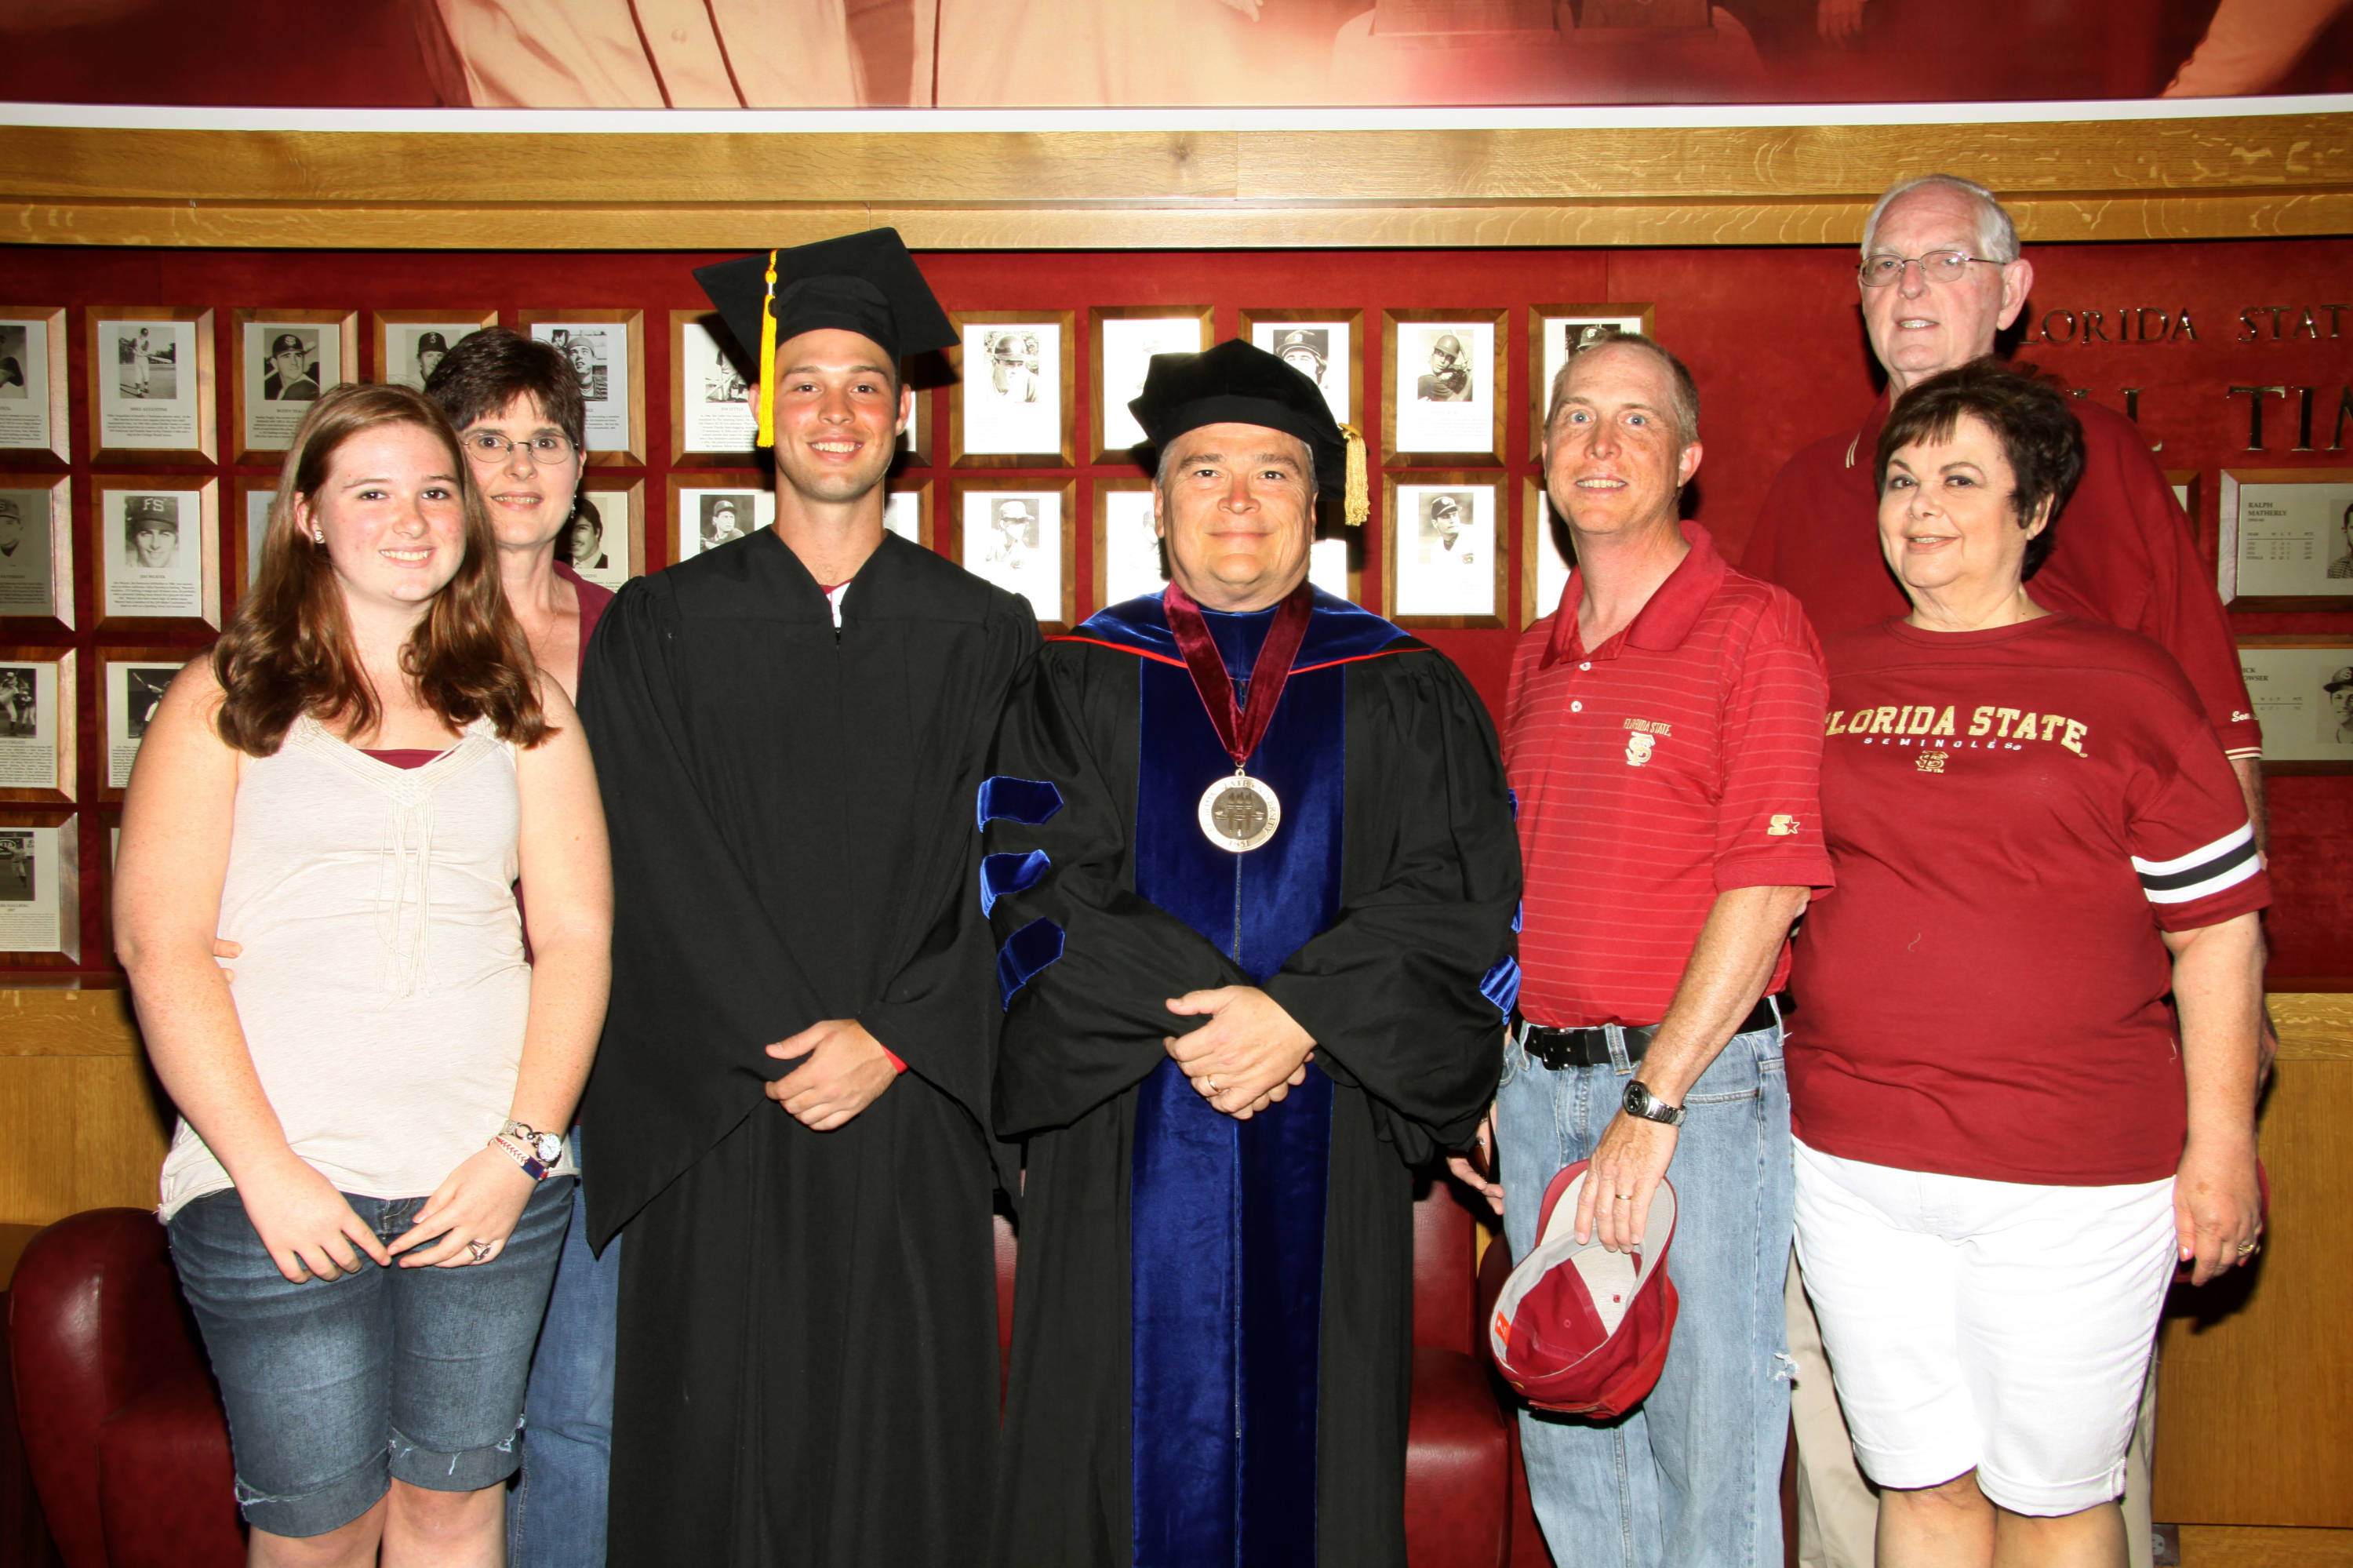 2011 Spring Graduation Ceremony held at Dick Howser Stadium to honor the graduating baseball seniors. Mike McGee (25) and family with President Barron